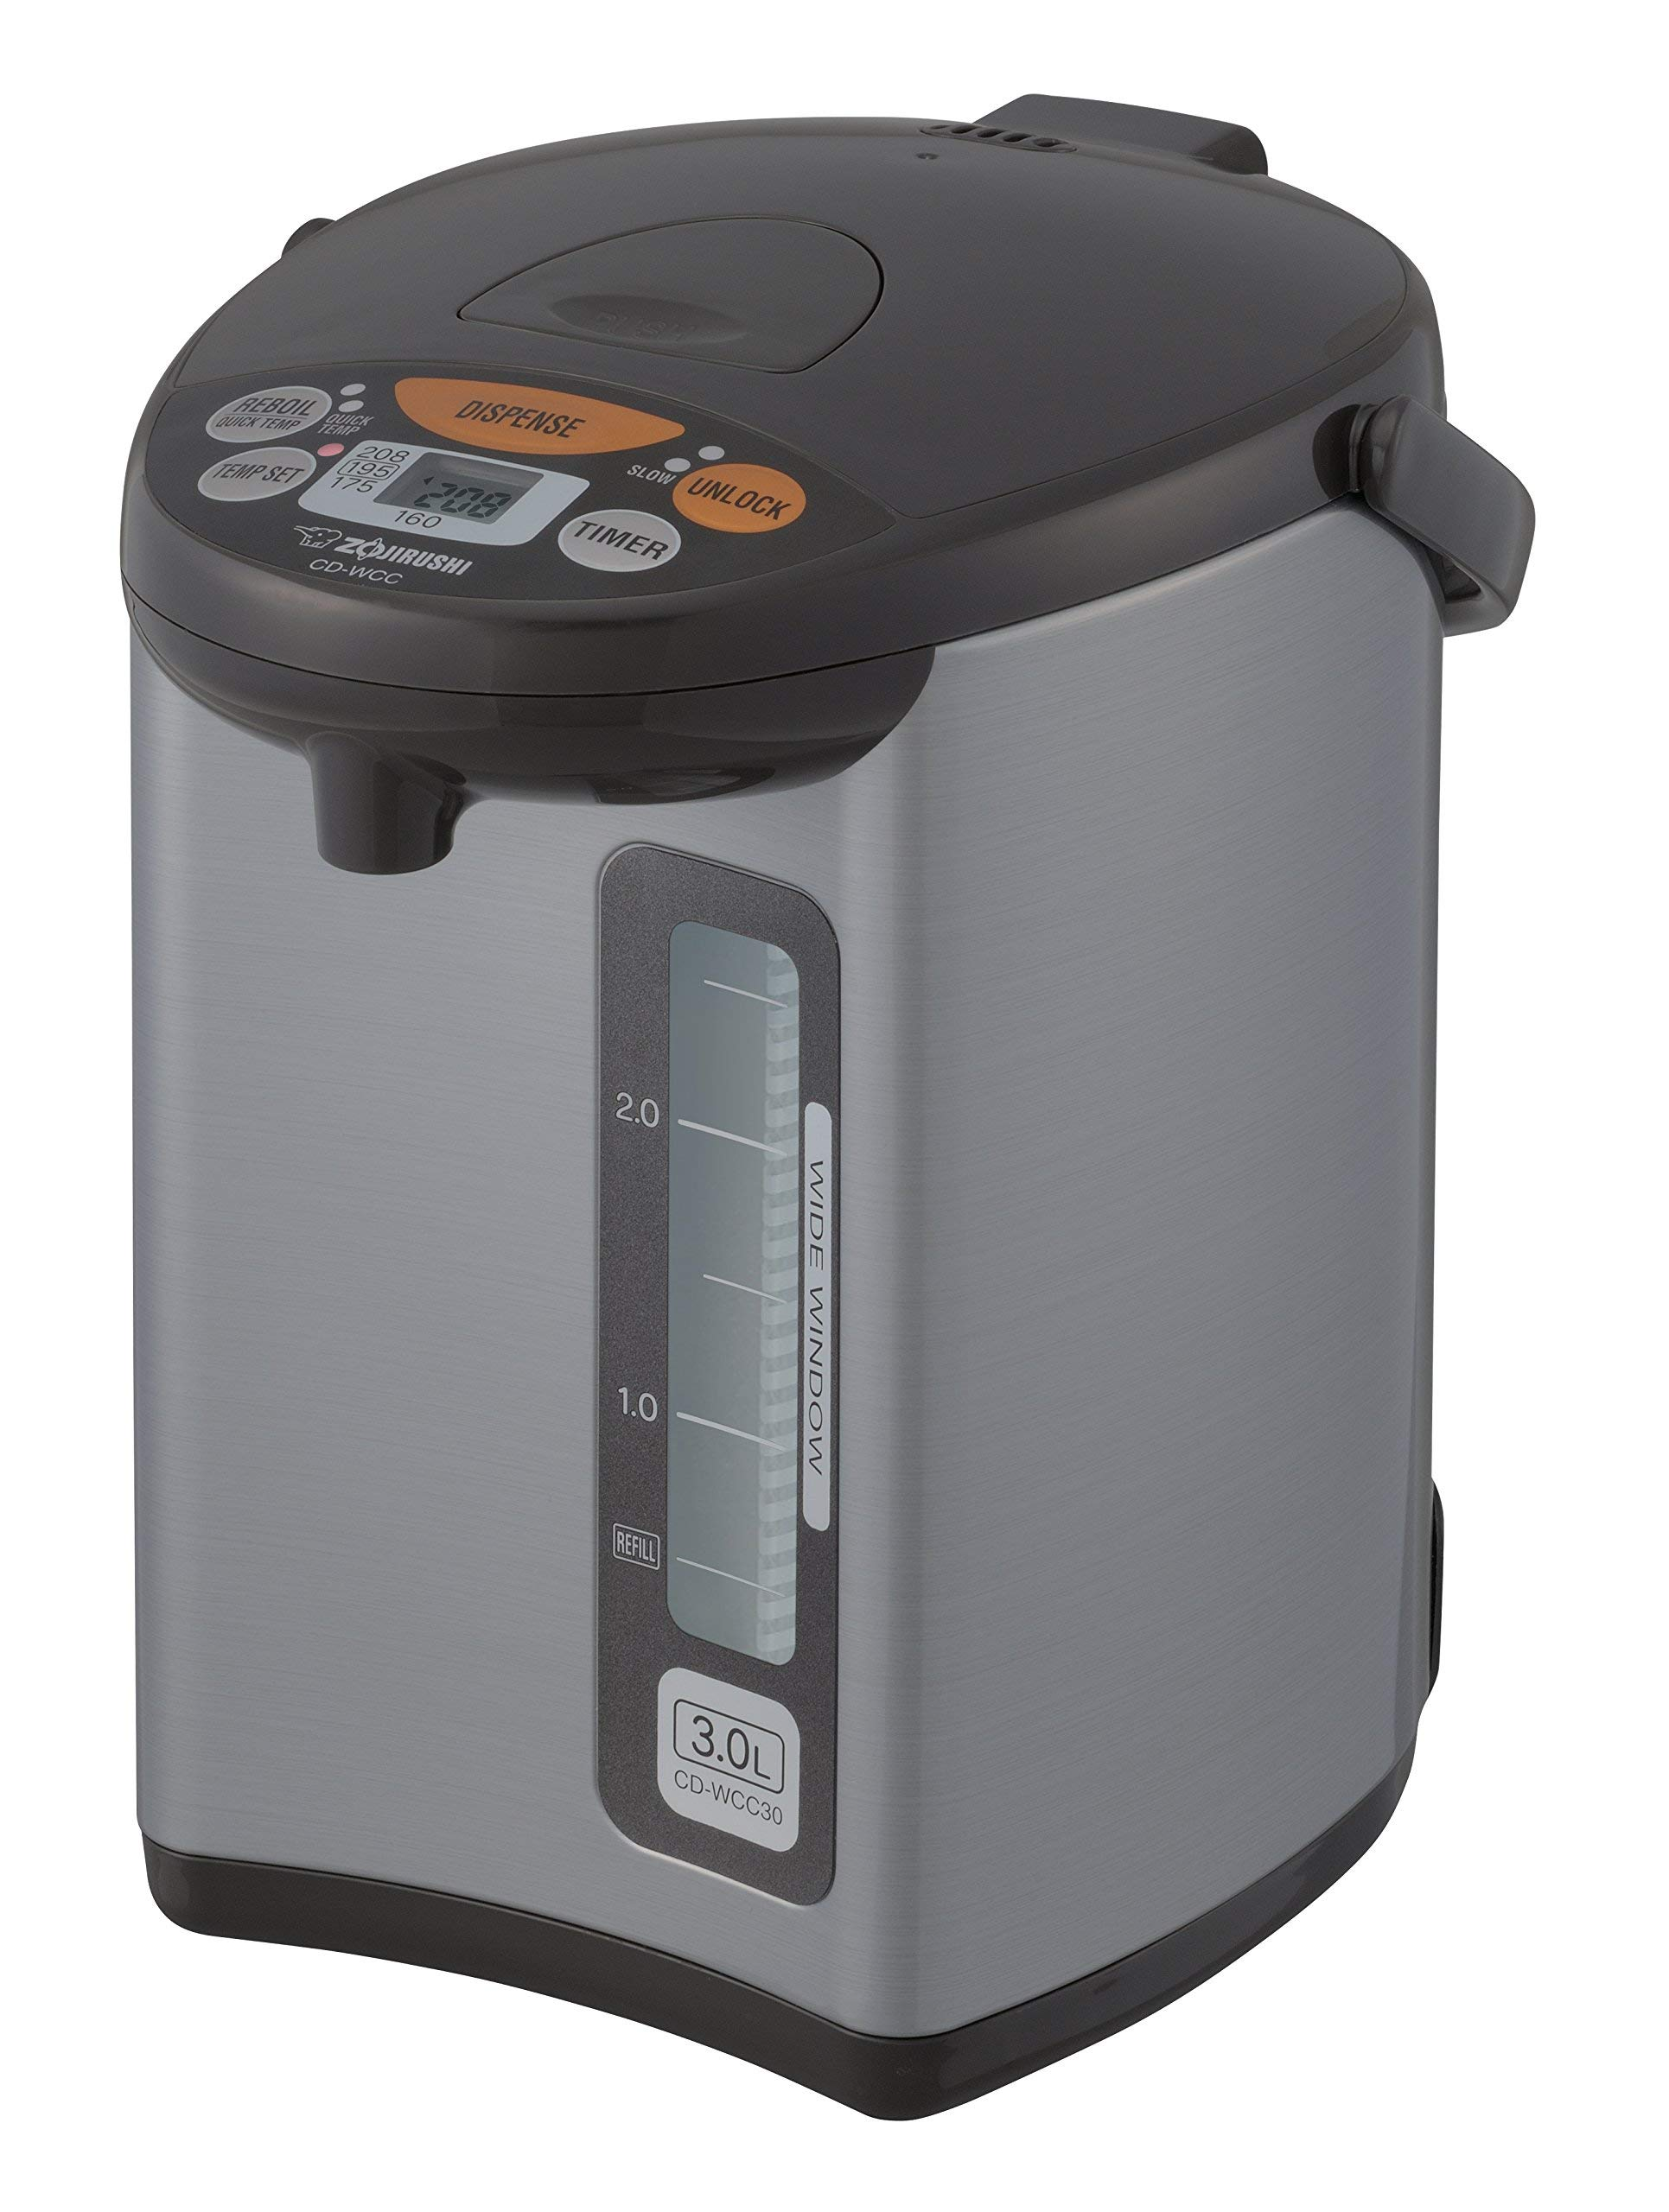 Zojirushi CD-WCC30 Micom Water Boiler & Warmer, Silver (Renewed) by Zojirushi